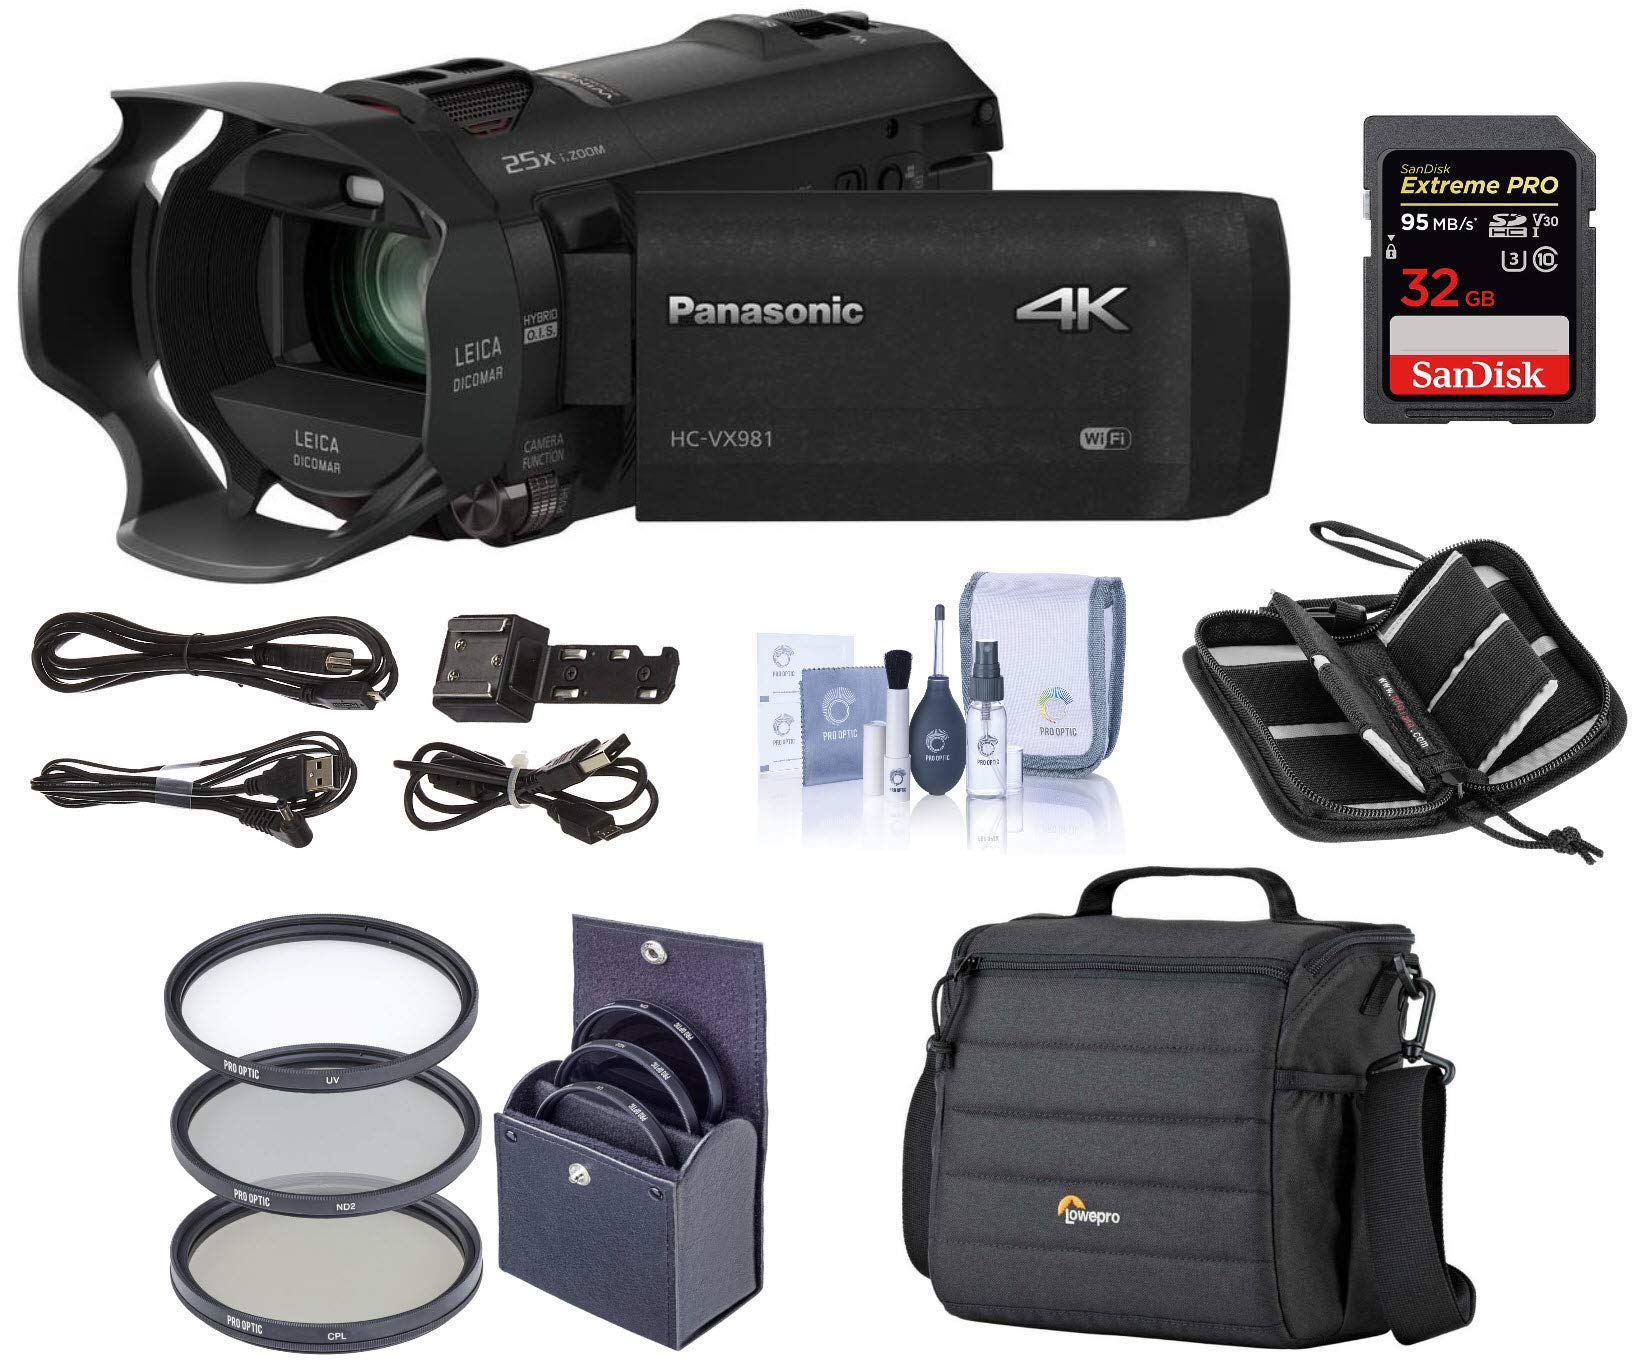 Panasonic HC-VX981K 4K Ultra HD Camcorder with 4K Photo Capture, Wi-Fi - Bundle with Video Bag, 32GB Class 10 U3 Sdhc Card, Cleaning Kit, 49mm Filter Kit, Memory Wallet by Panasonic